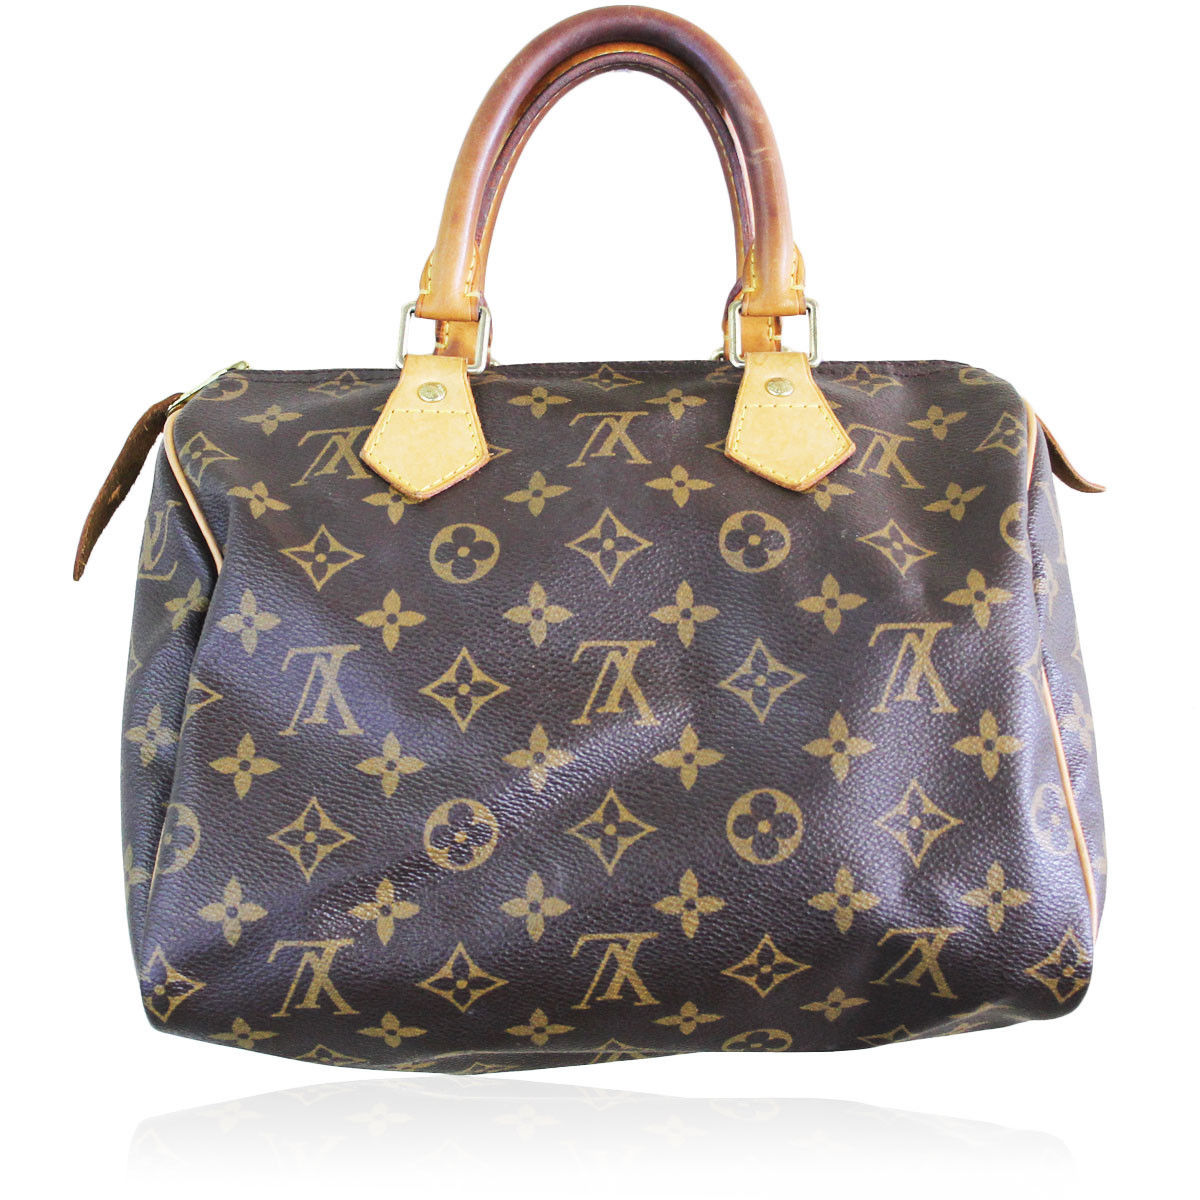 authentic louis vuitton monogram speedy 25 handbag